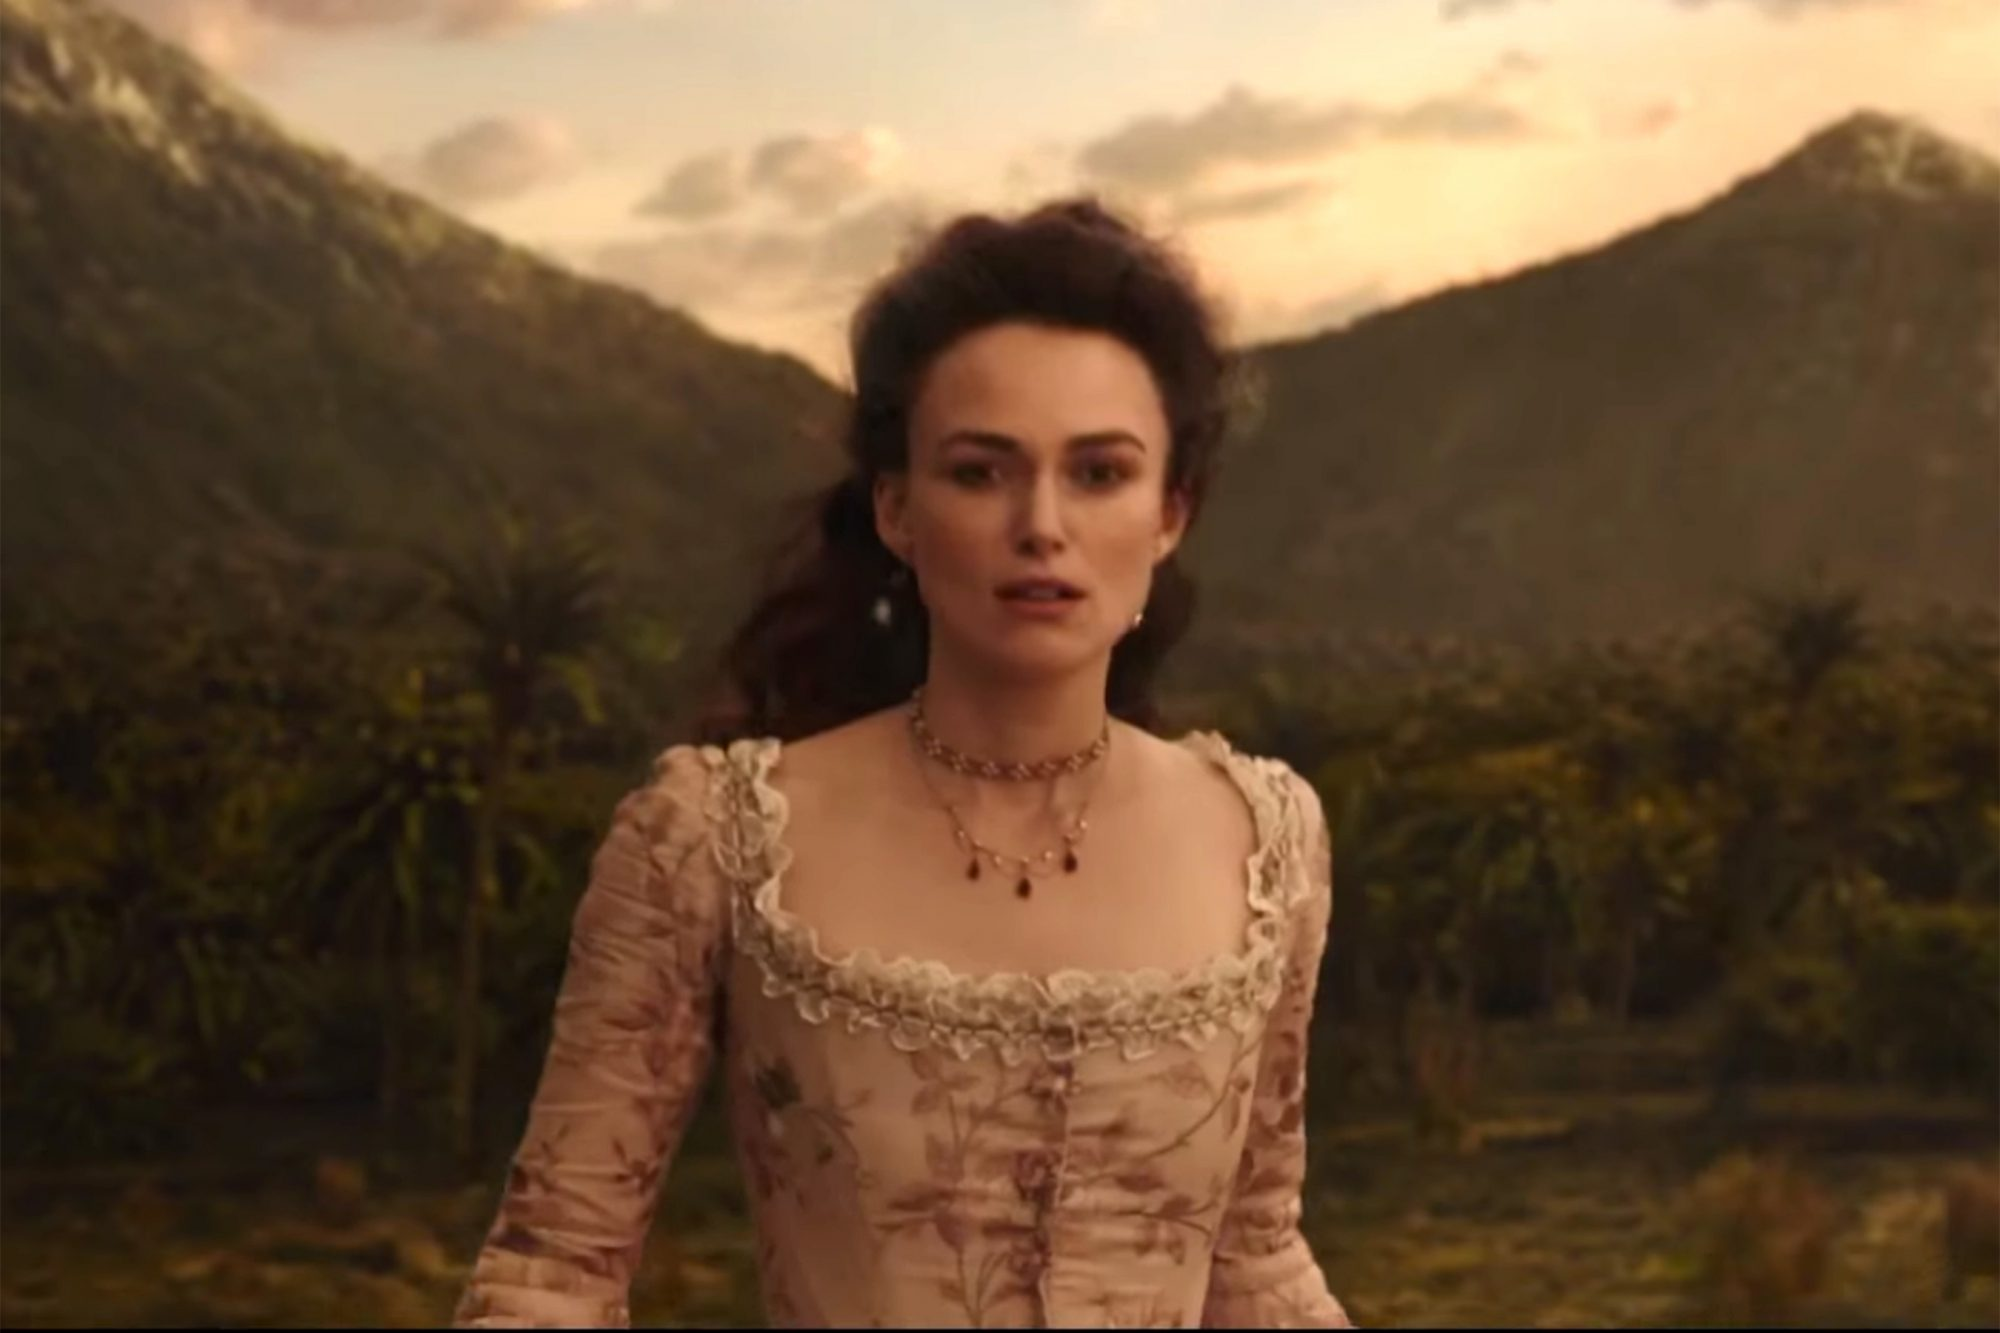 Keira Knightley Returns in New <em>Pirates of the Caribbean</em> Trailer